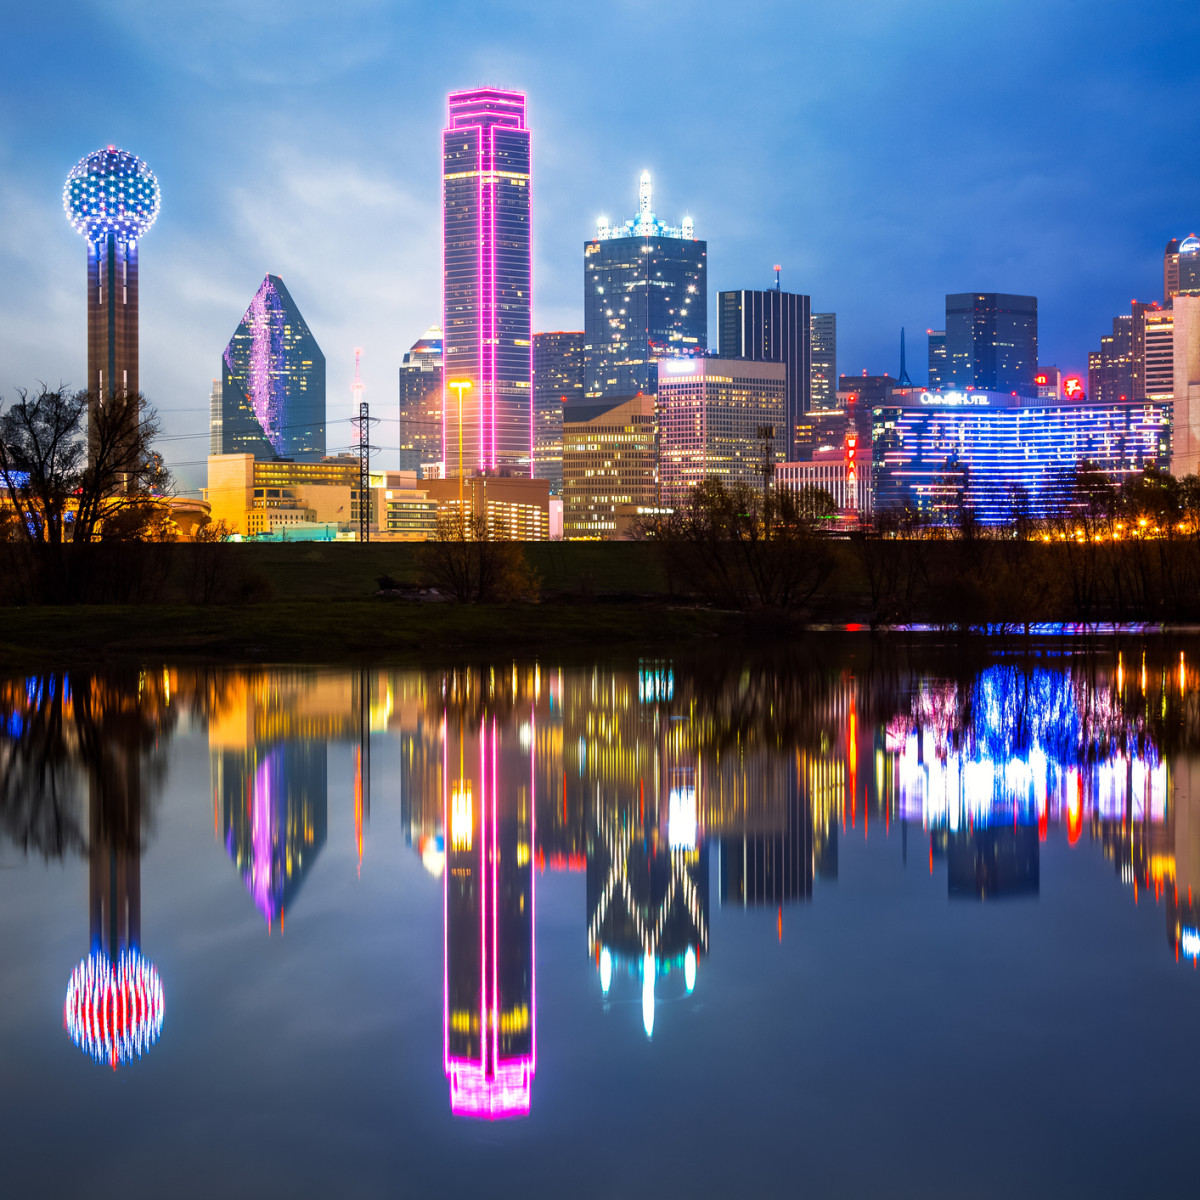 Dallas skyline with reflection